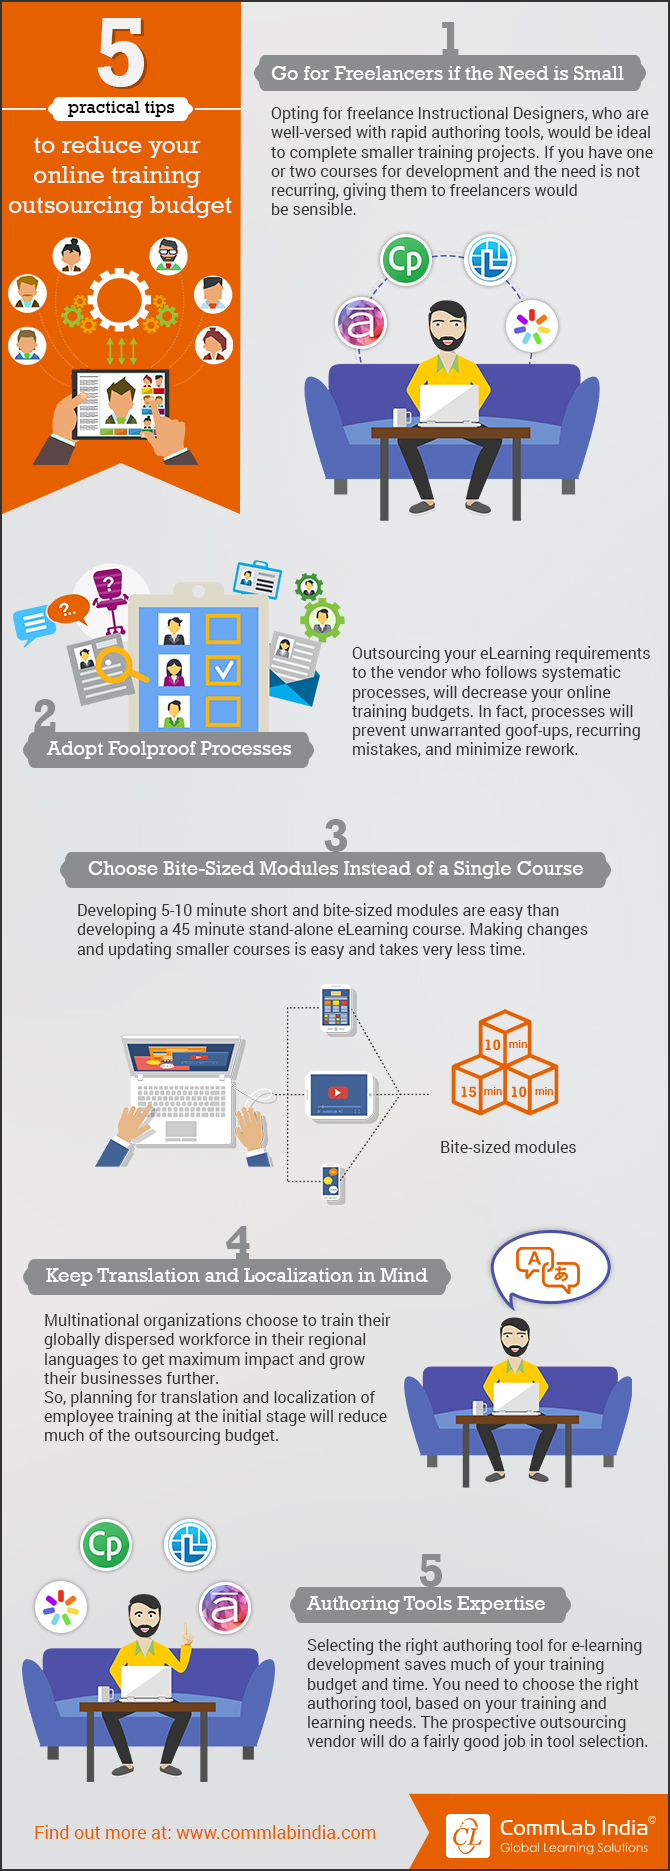 Five Practical Tips to Reduce Your Online Training Outsourcing Budget [Infographic]